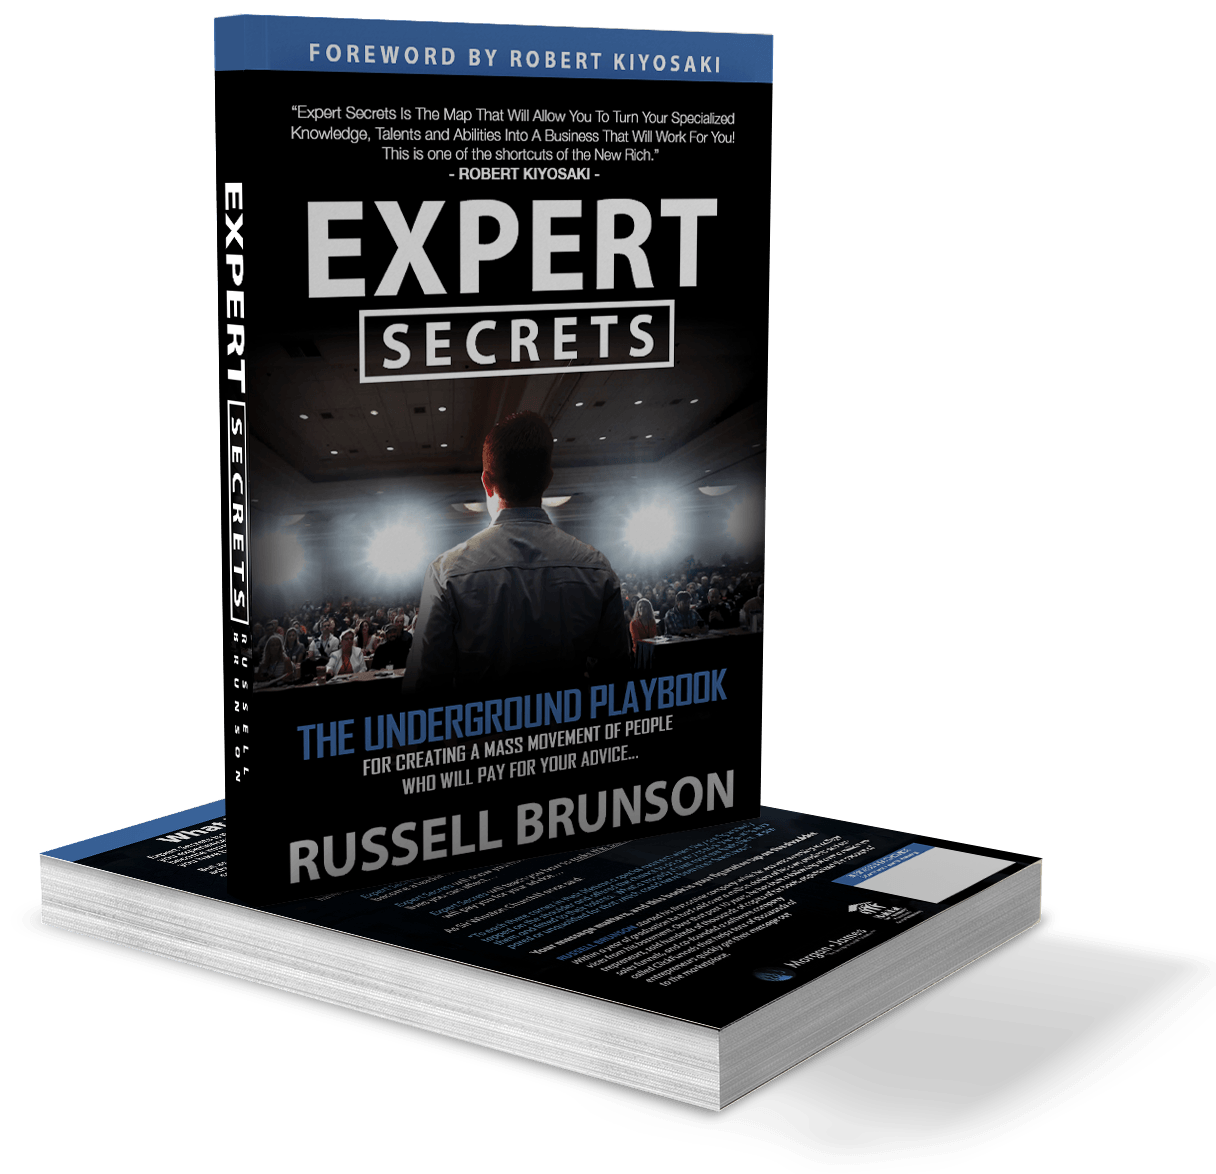 Get Expert Secrets Book For Free - Russell Brunson